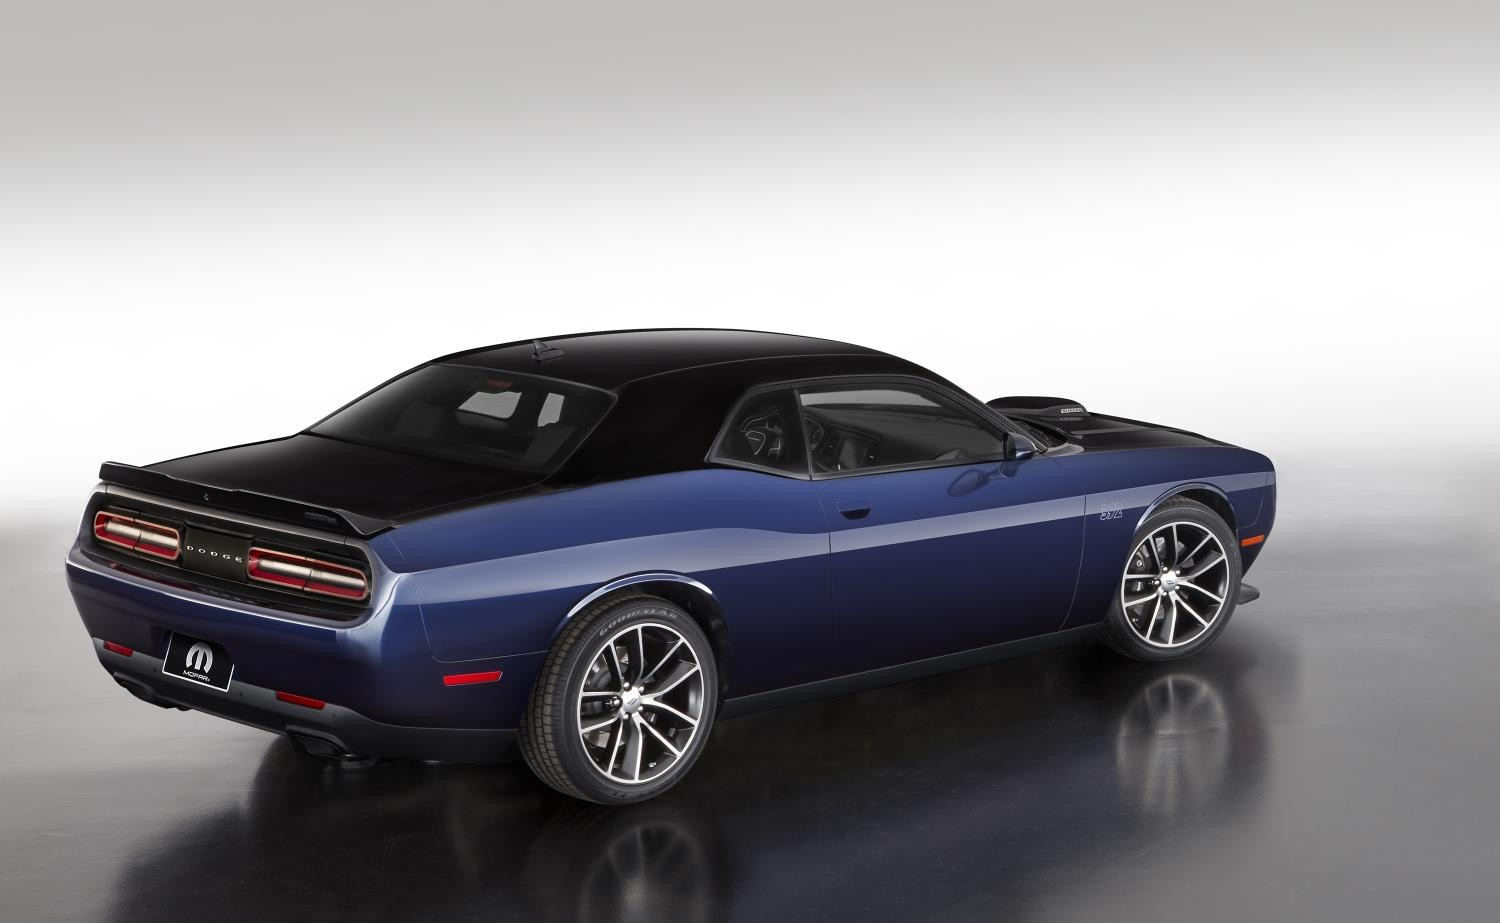 Srt Dodge Challenger >> Official: Mopar '17 Dodge Challenger